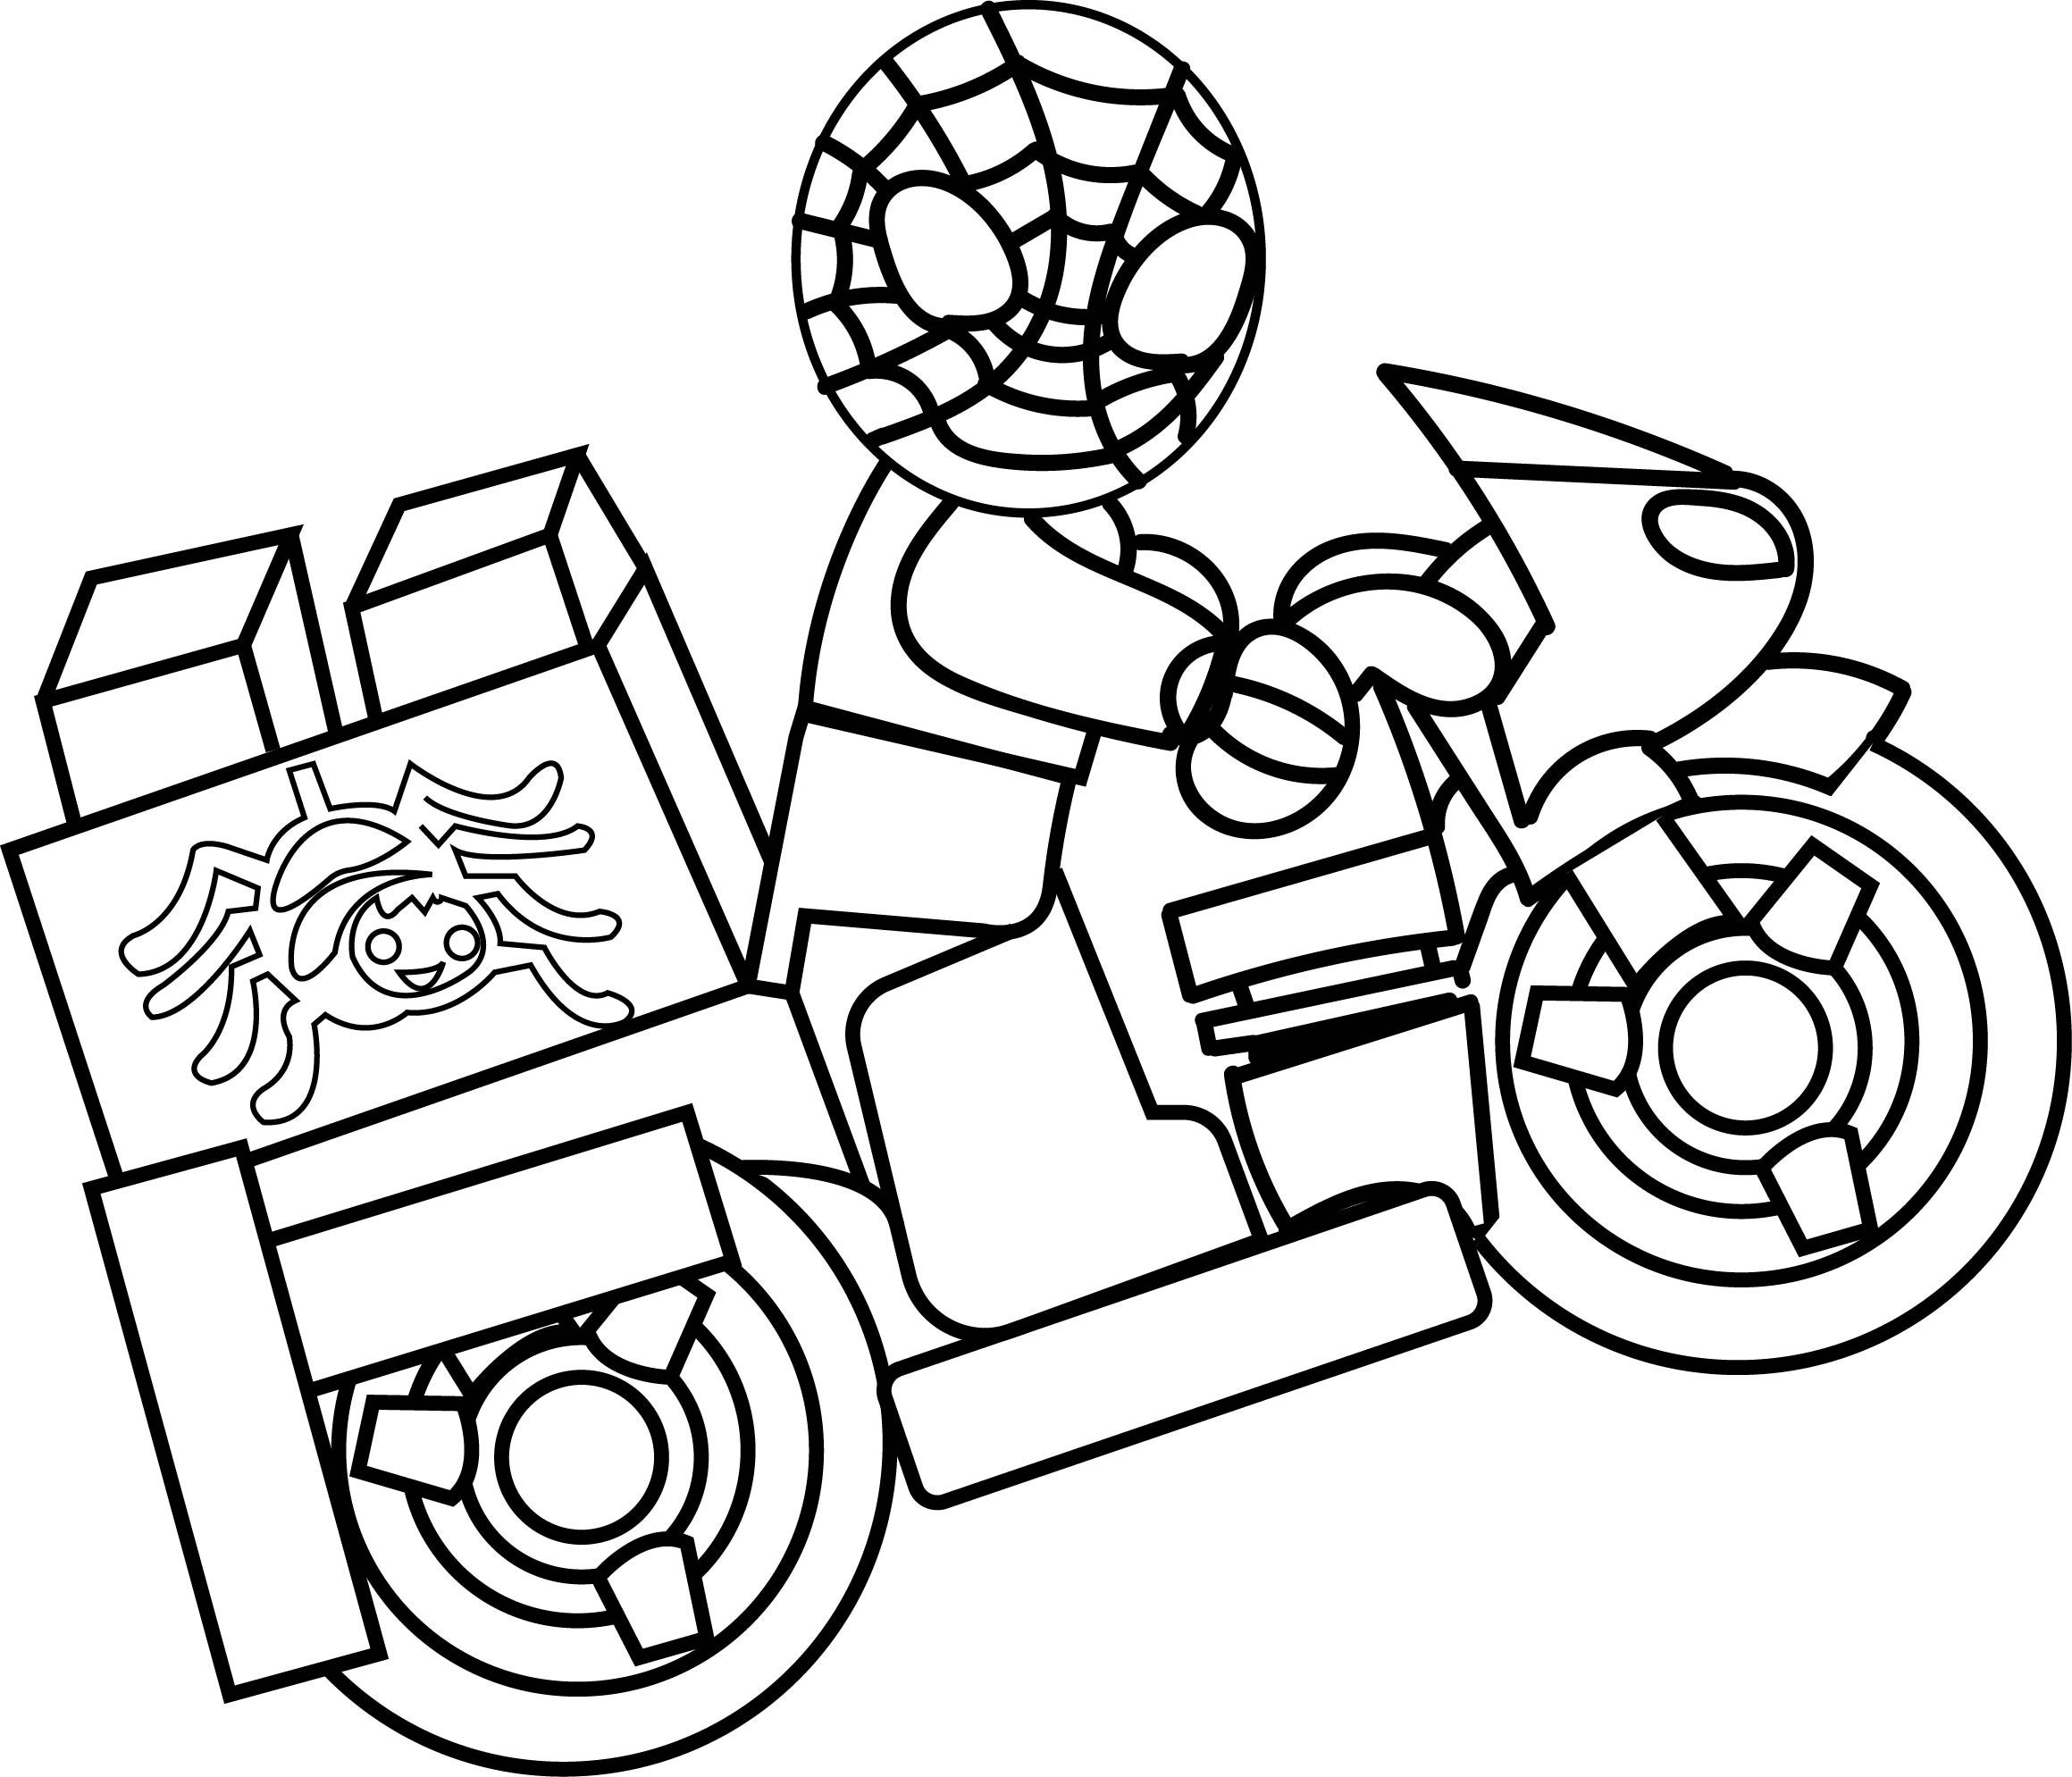 Lego Spiderman Coloring Pages New Of Lego Spiderman Coloring Pages Pictures Printable Coloring Pages